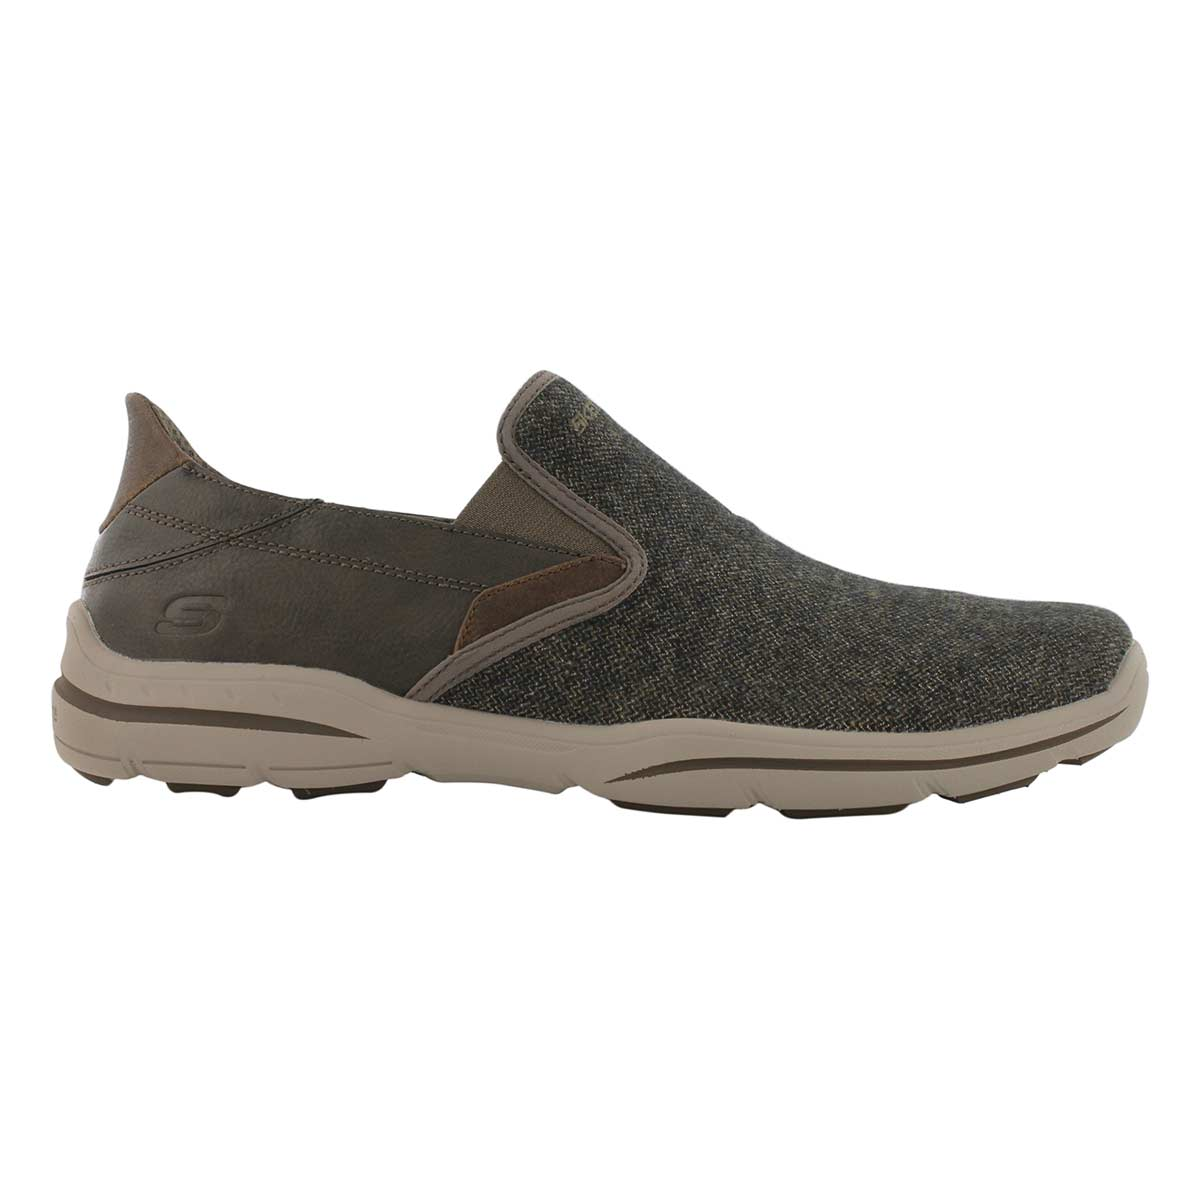 Mns Harper Trefton brn slip on shoe